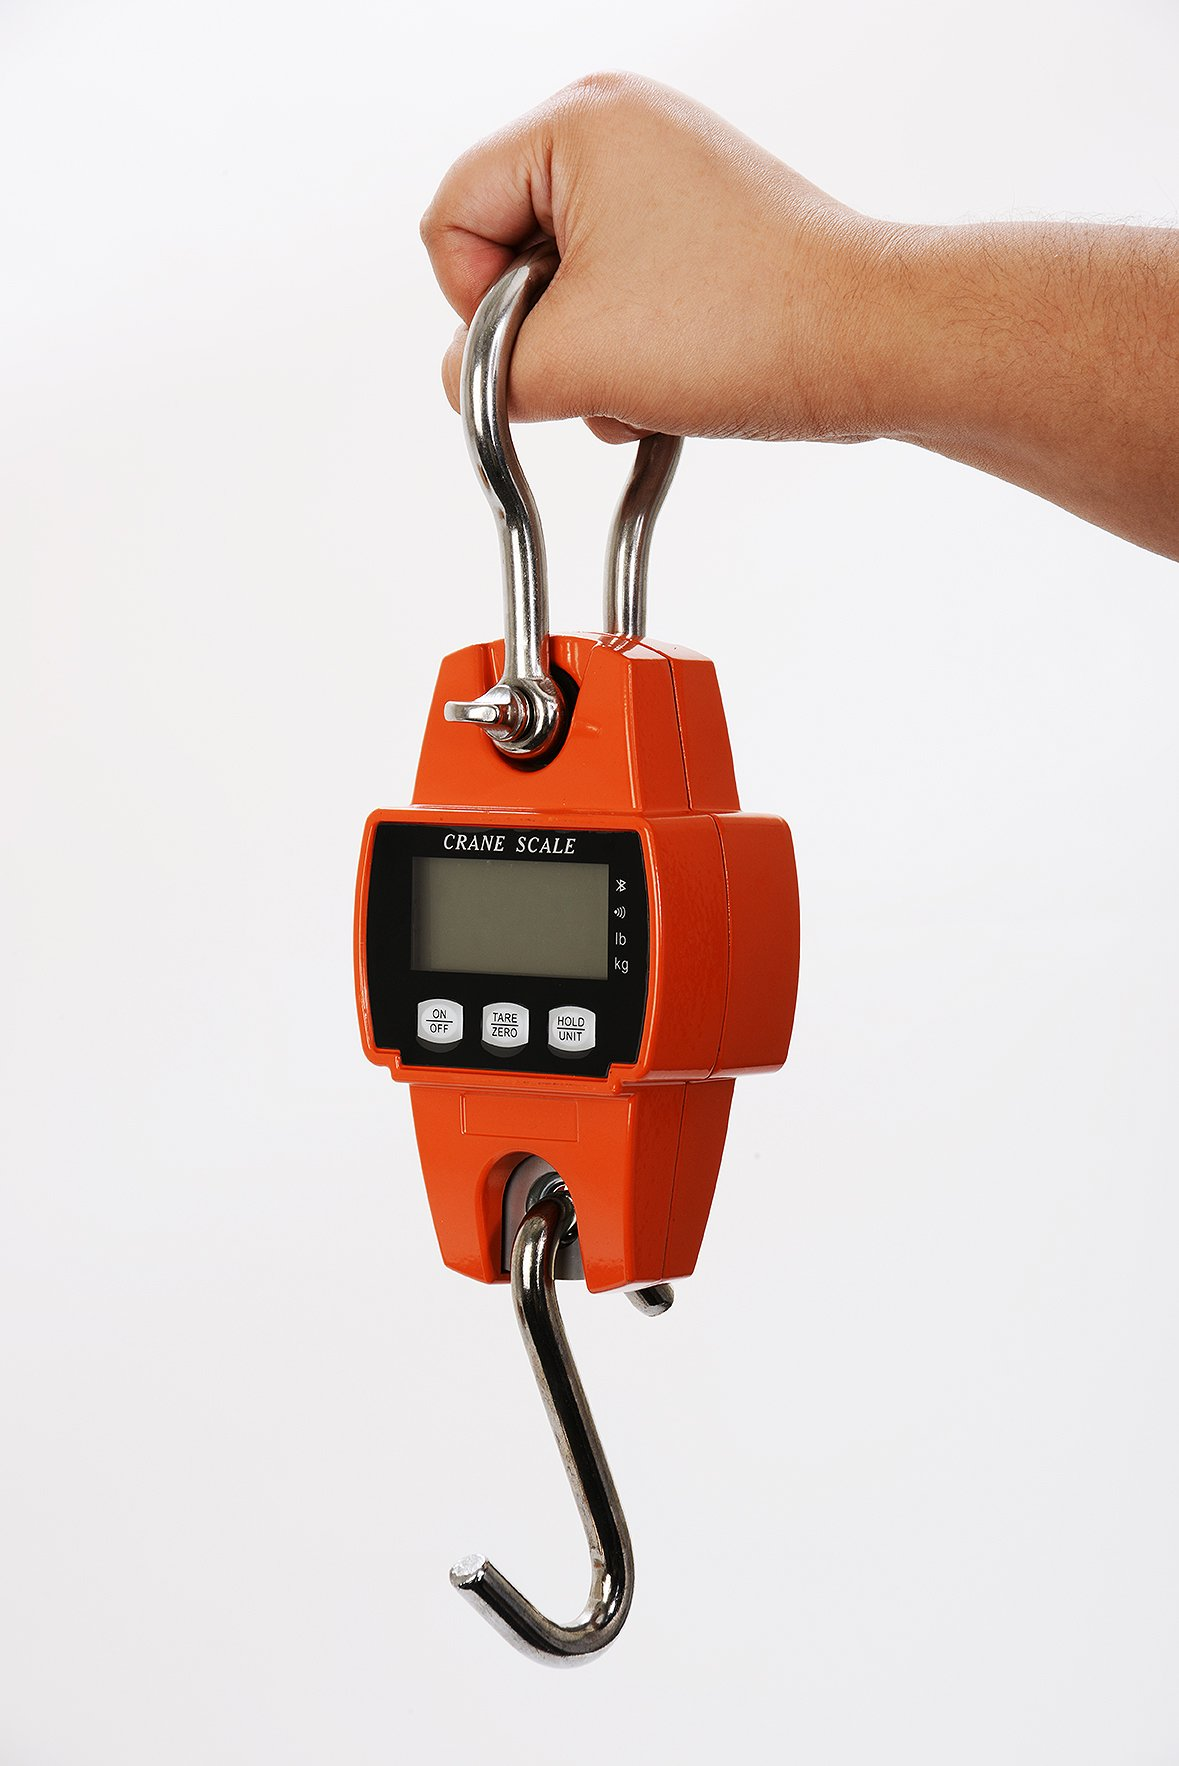 Portable Industrial Grade Crane Scale / Hanging Scale / Fishing Scale (300x0.05lb)